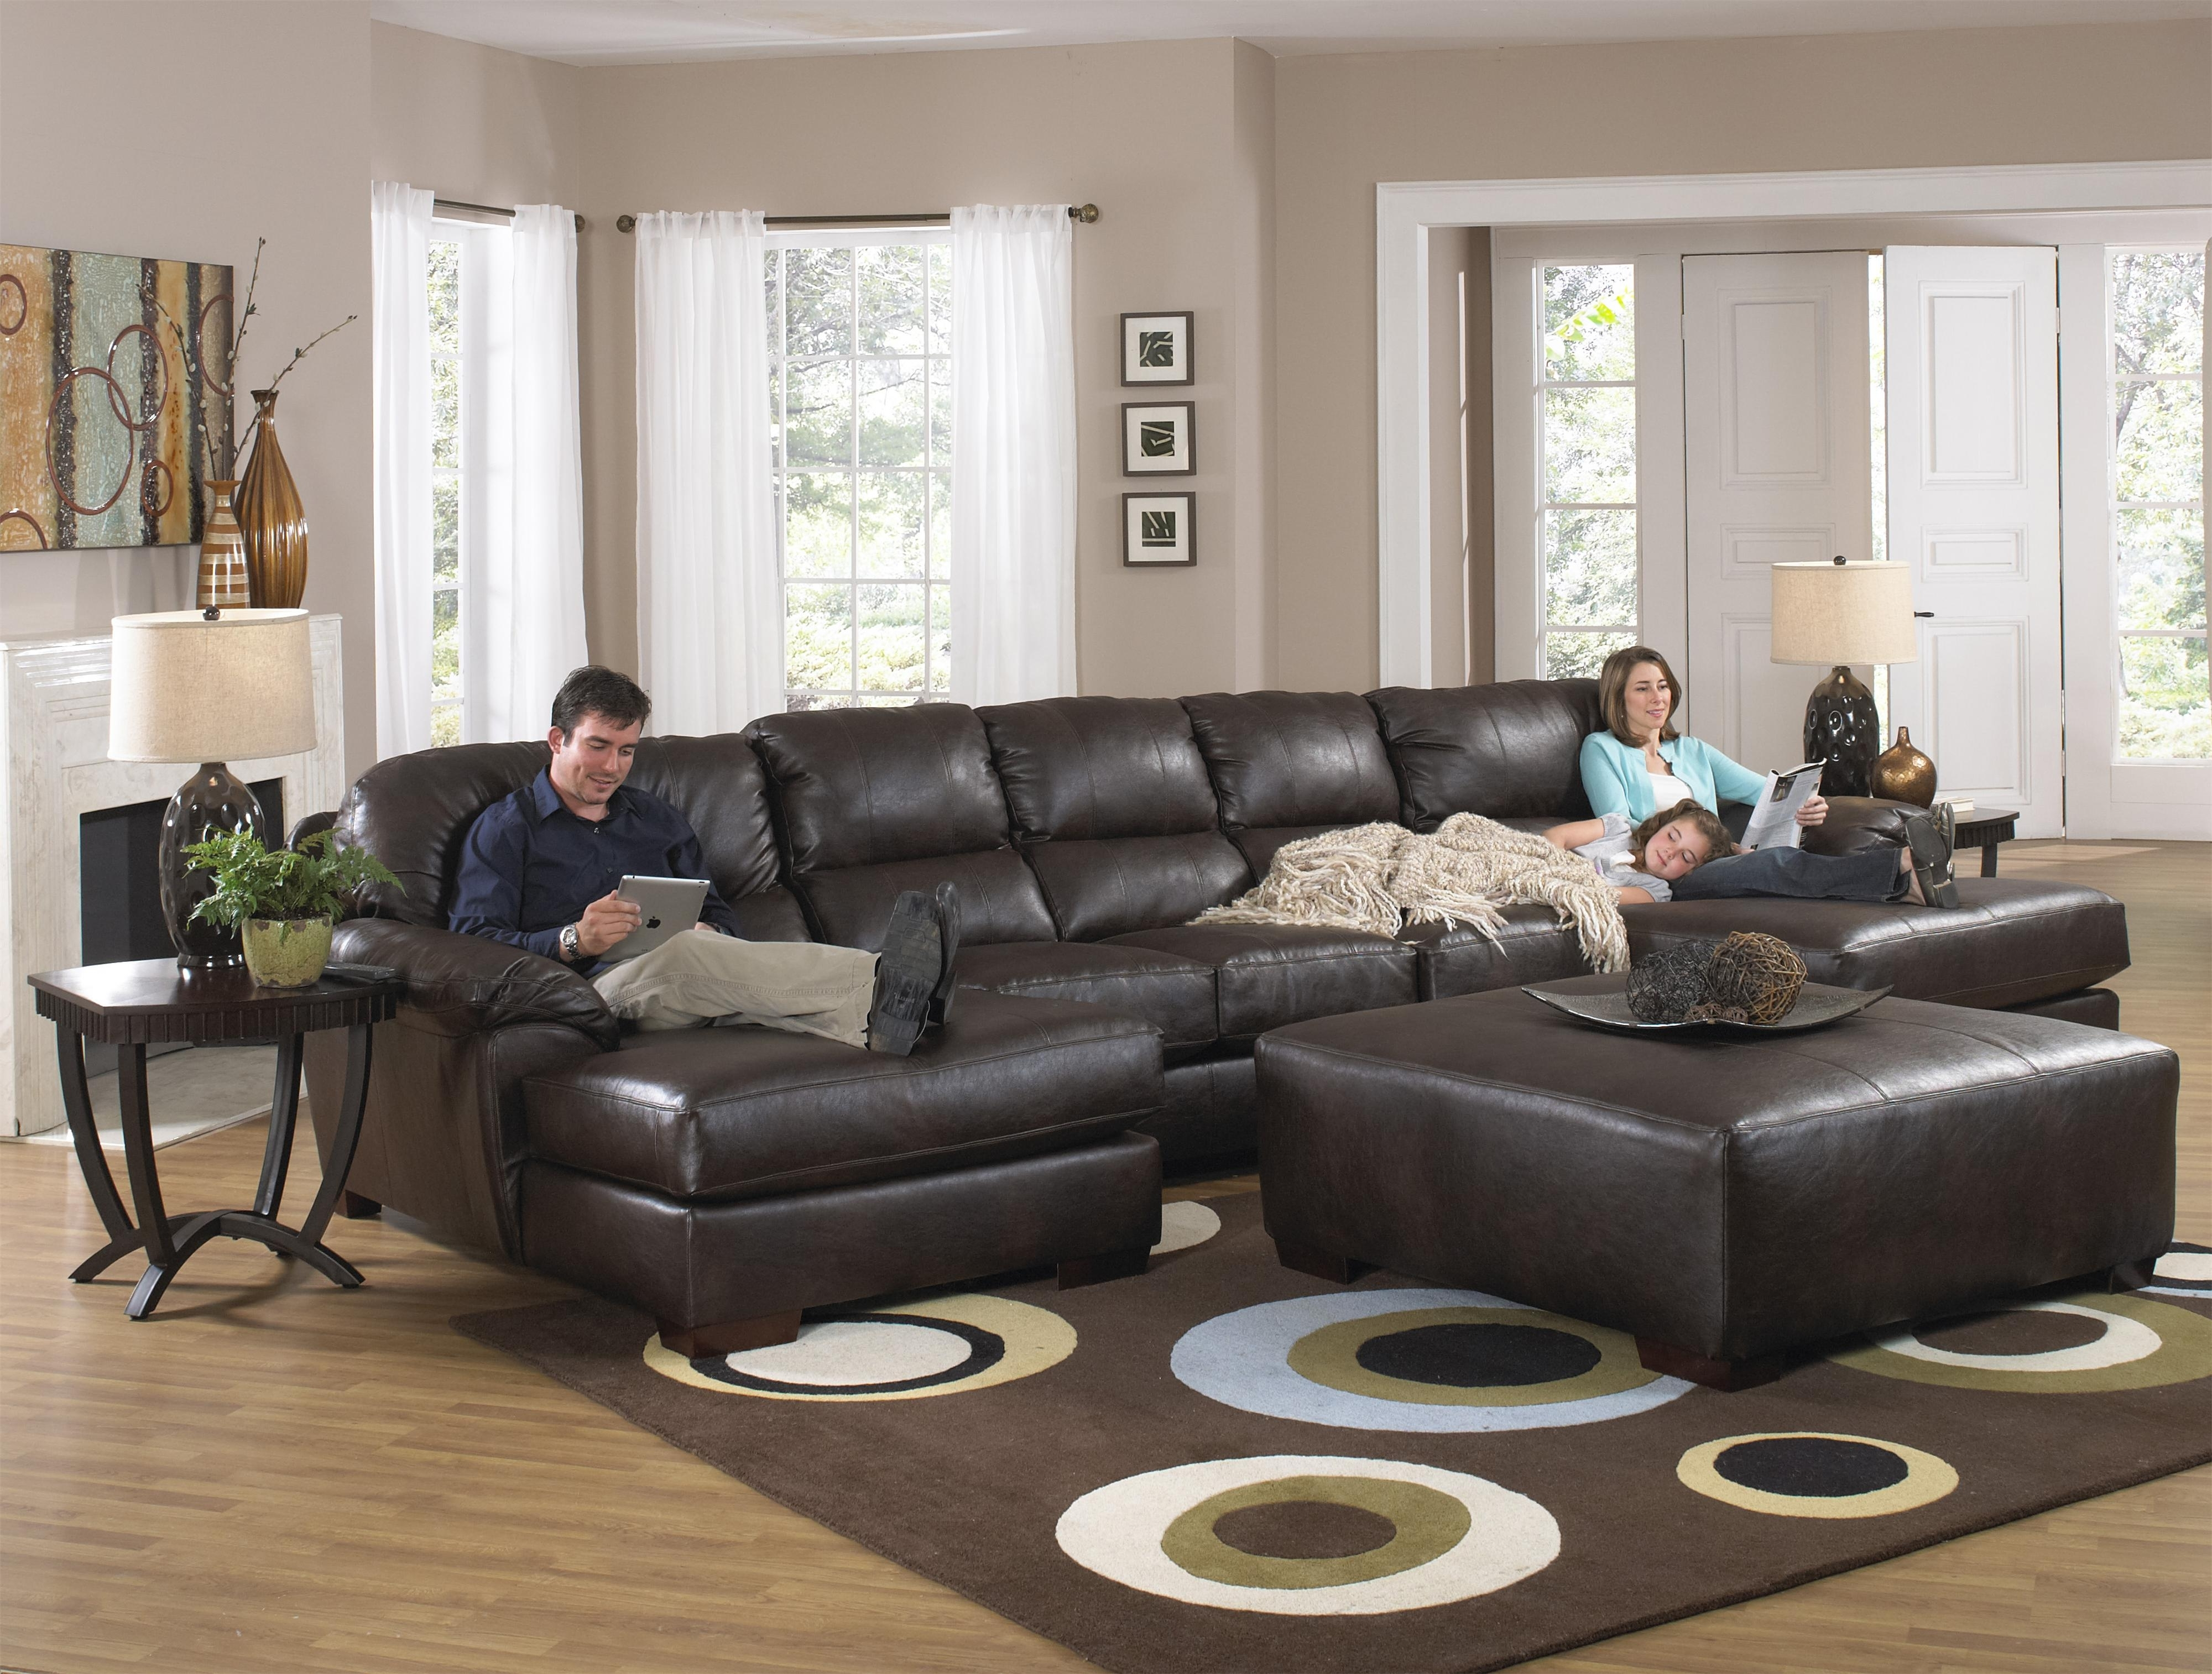 Sofas With Large Ottoman For Famous Large Sectional Sofa With Ottoman (View 3 of 20)